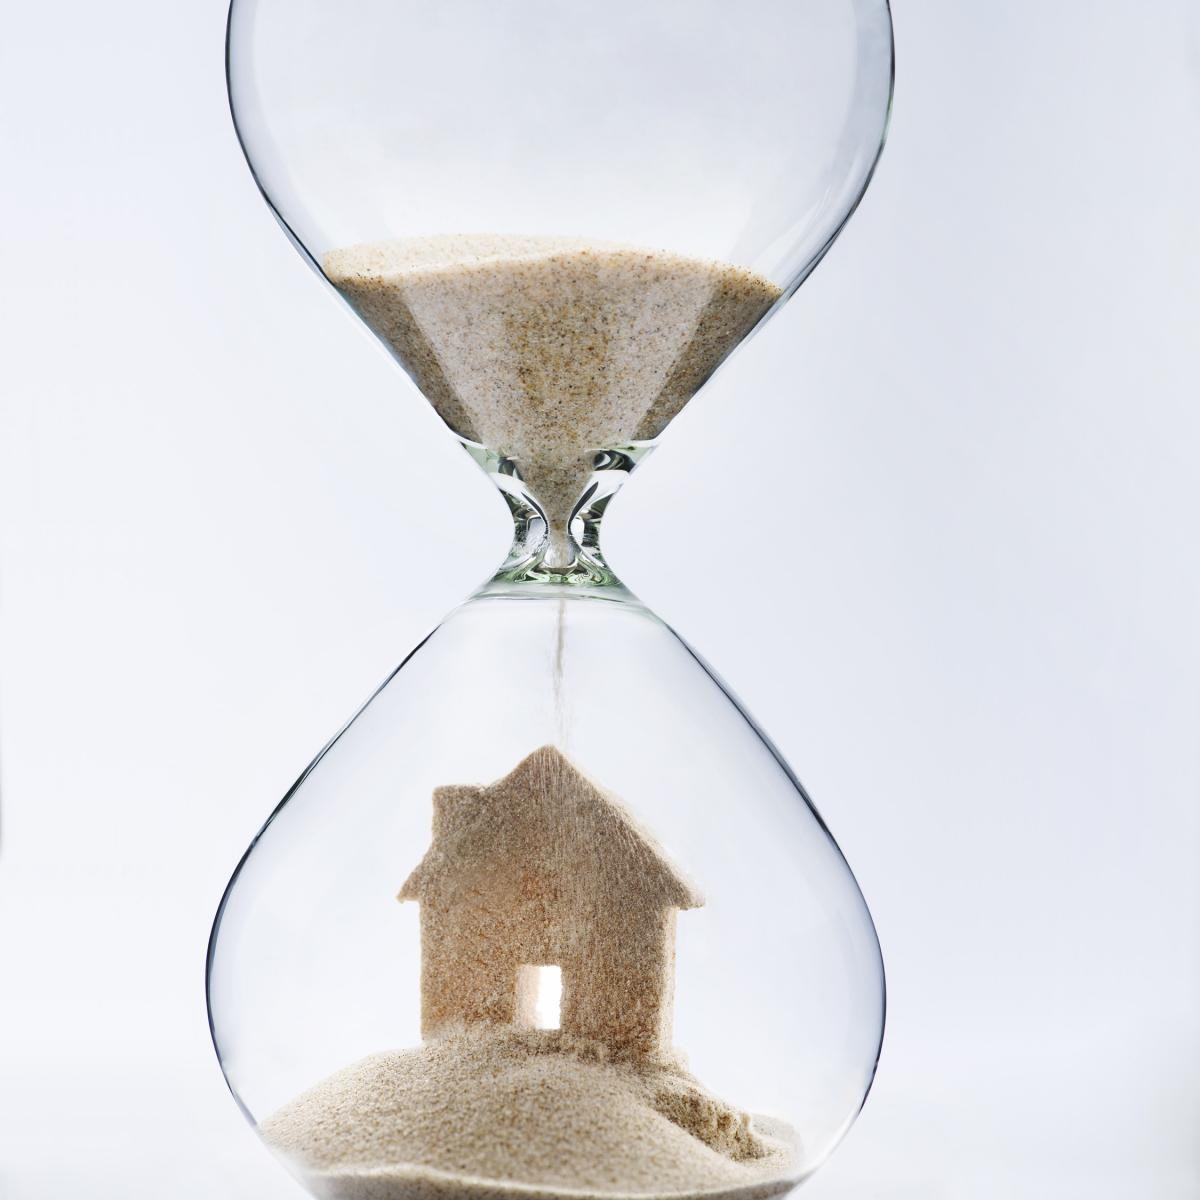 How long will it take to find your house